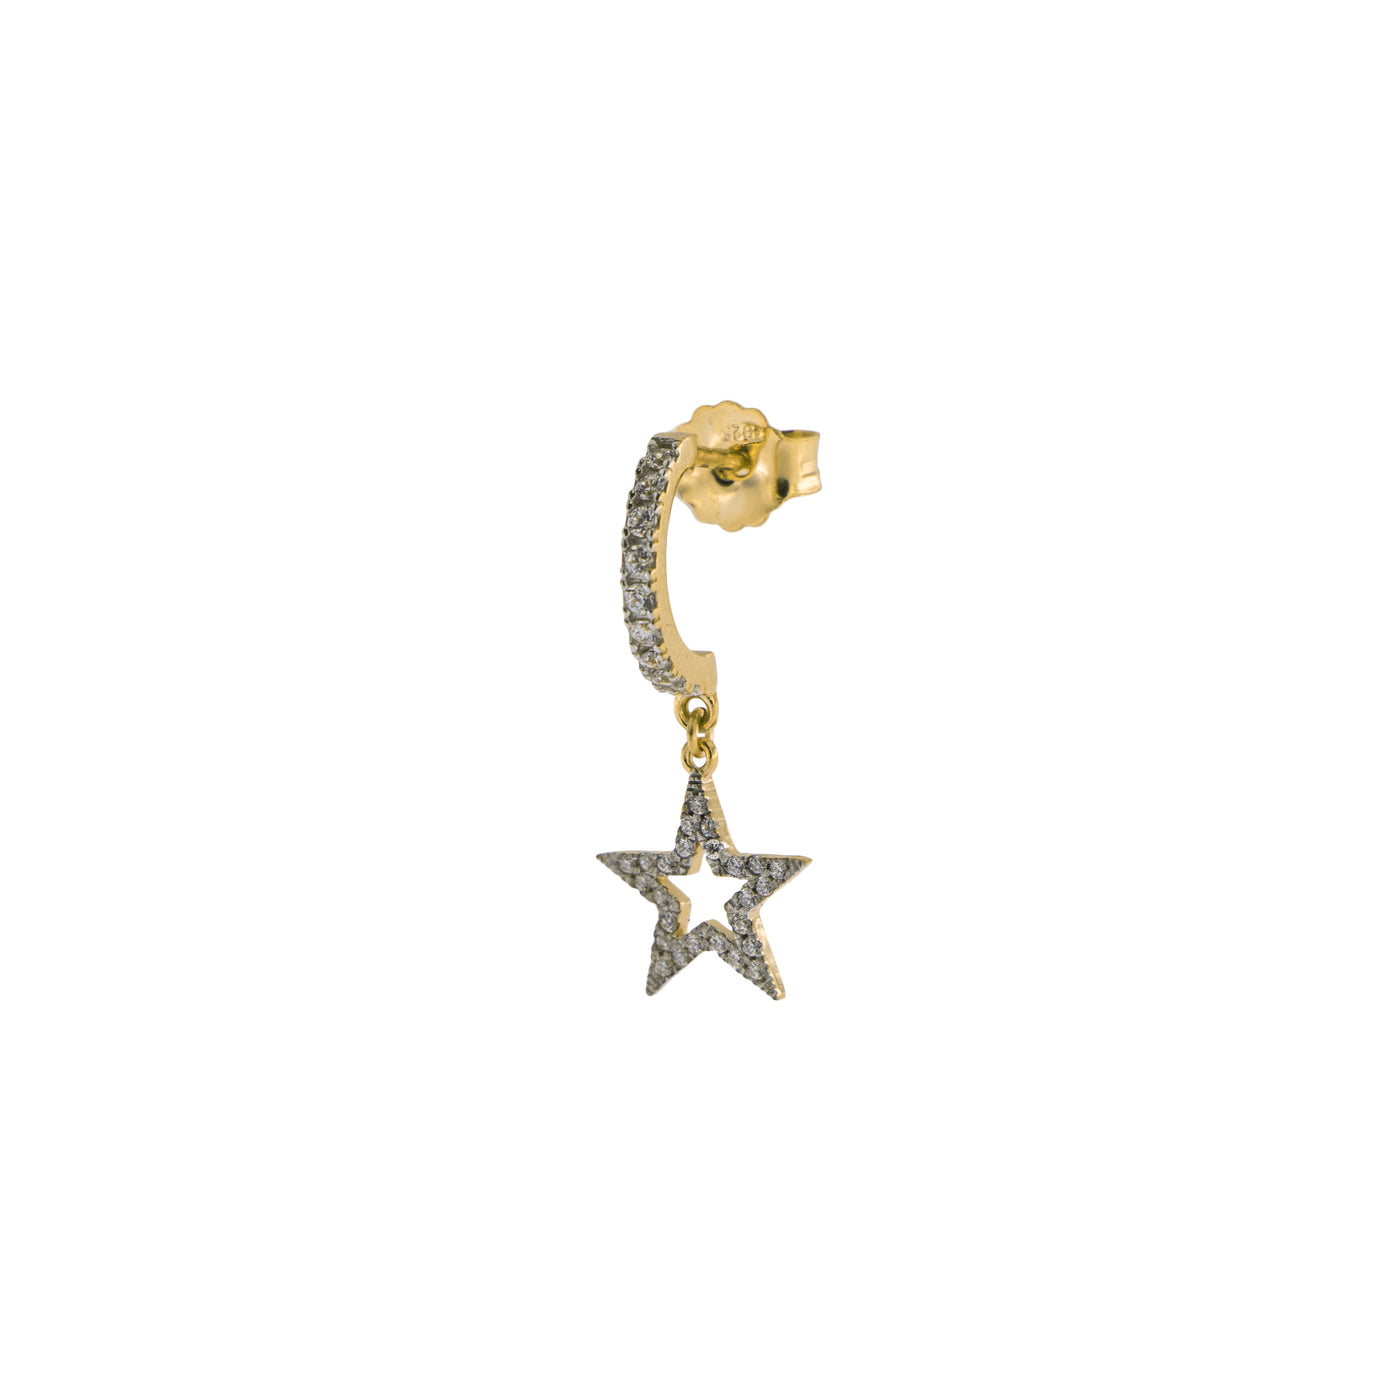 Earrings - Mono Earring with Subject and White Zircon - Star - 2 | Rue des Mille